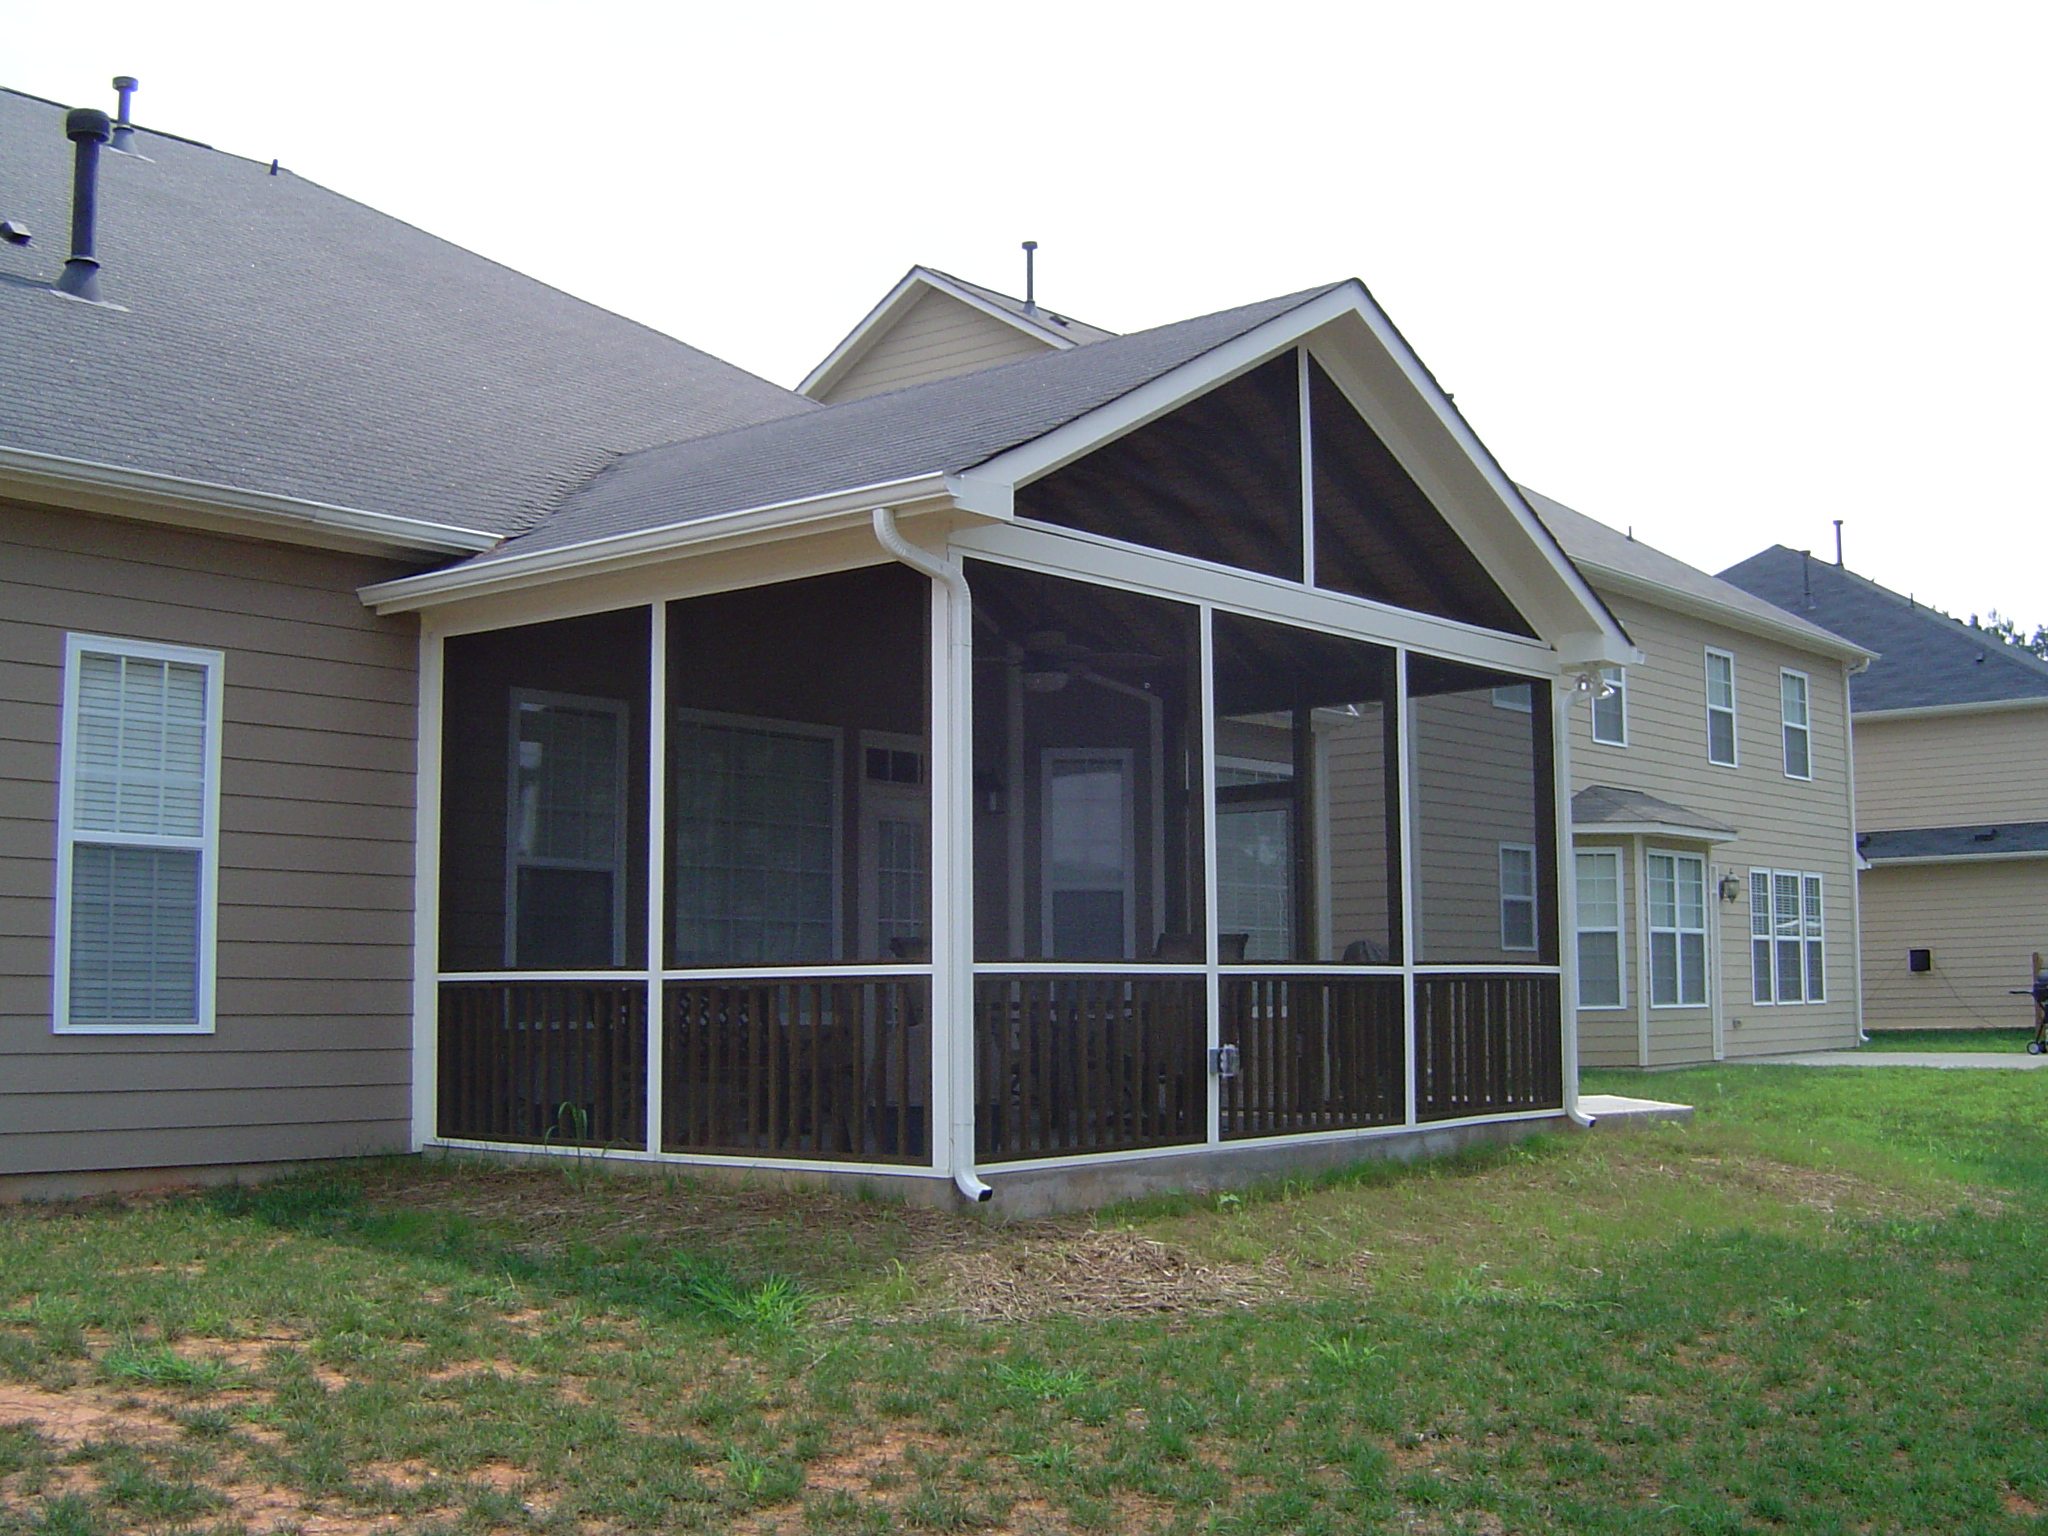 Mobile home plans with porches joy studio design gallery for Screened in porch ideas for mobile homes